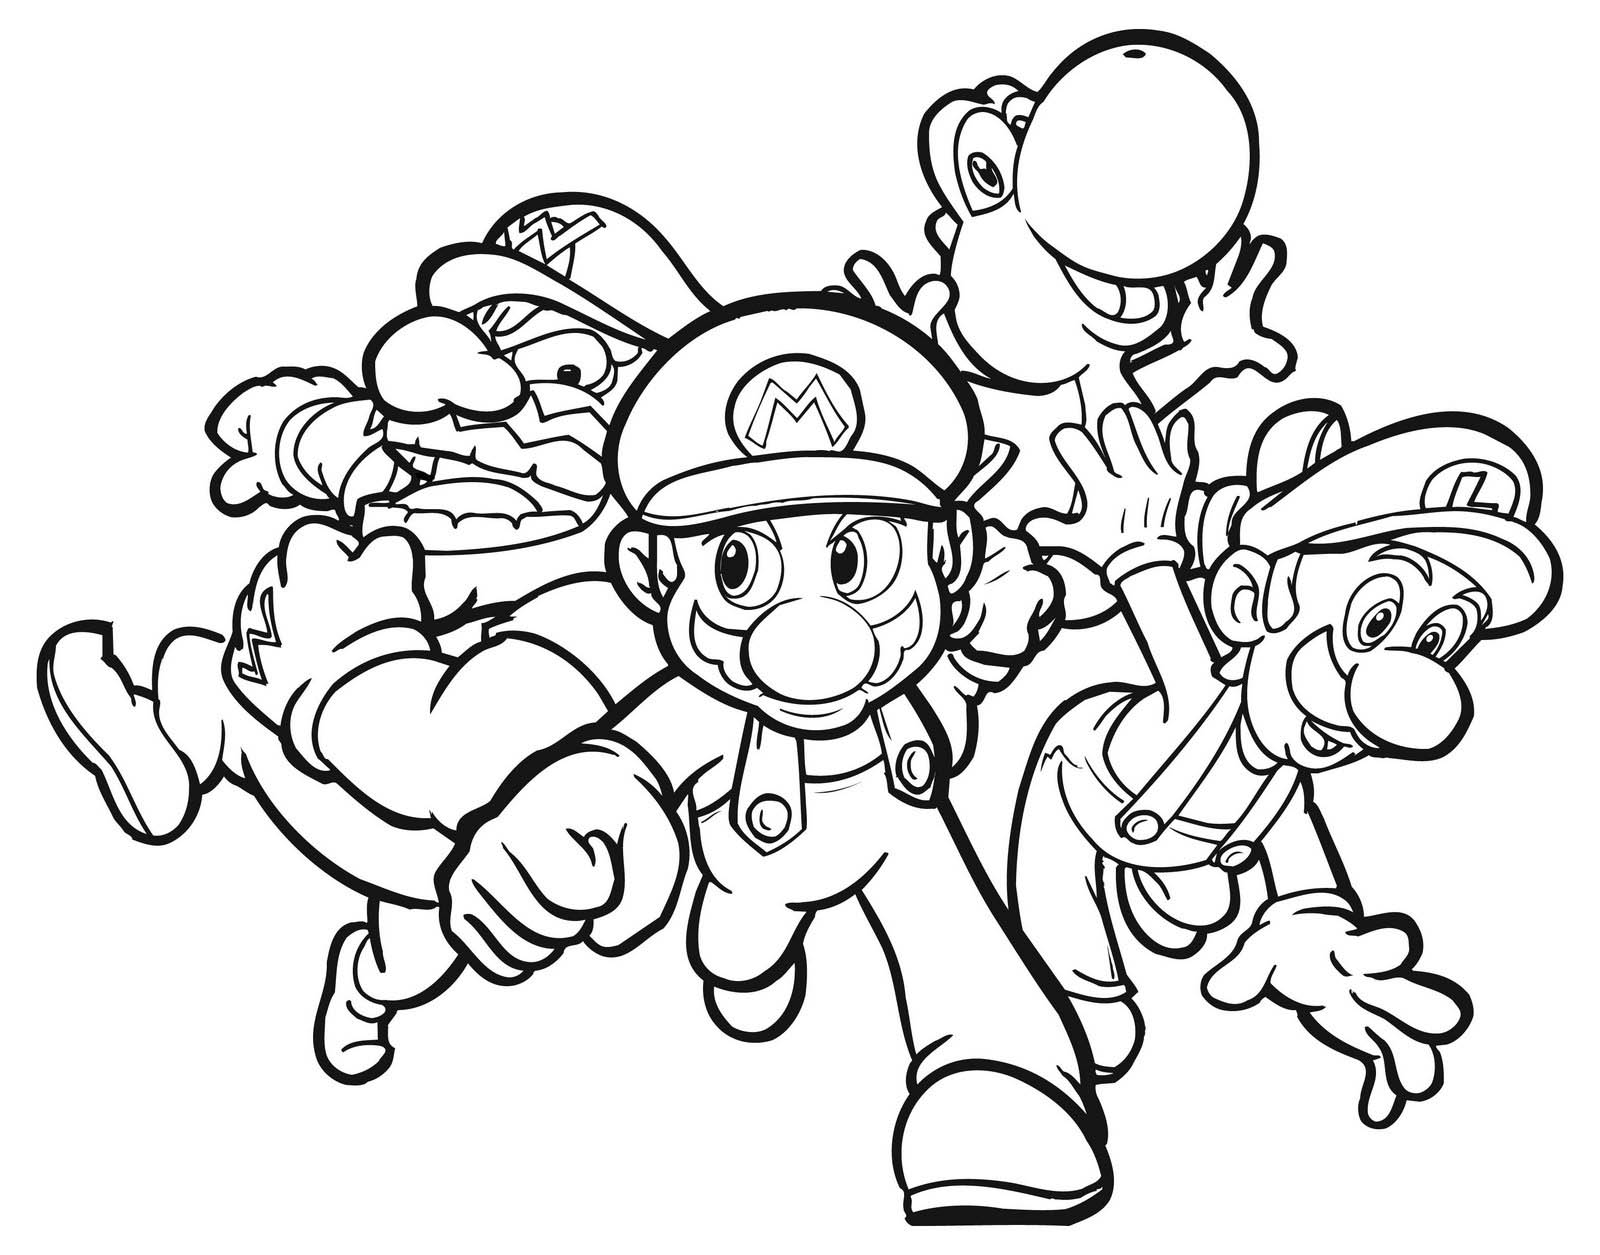 mario bros coloring pages - Couloring Sheets